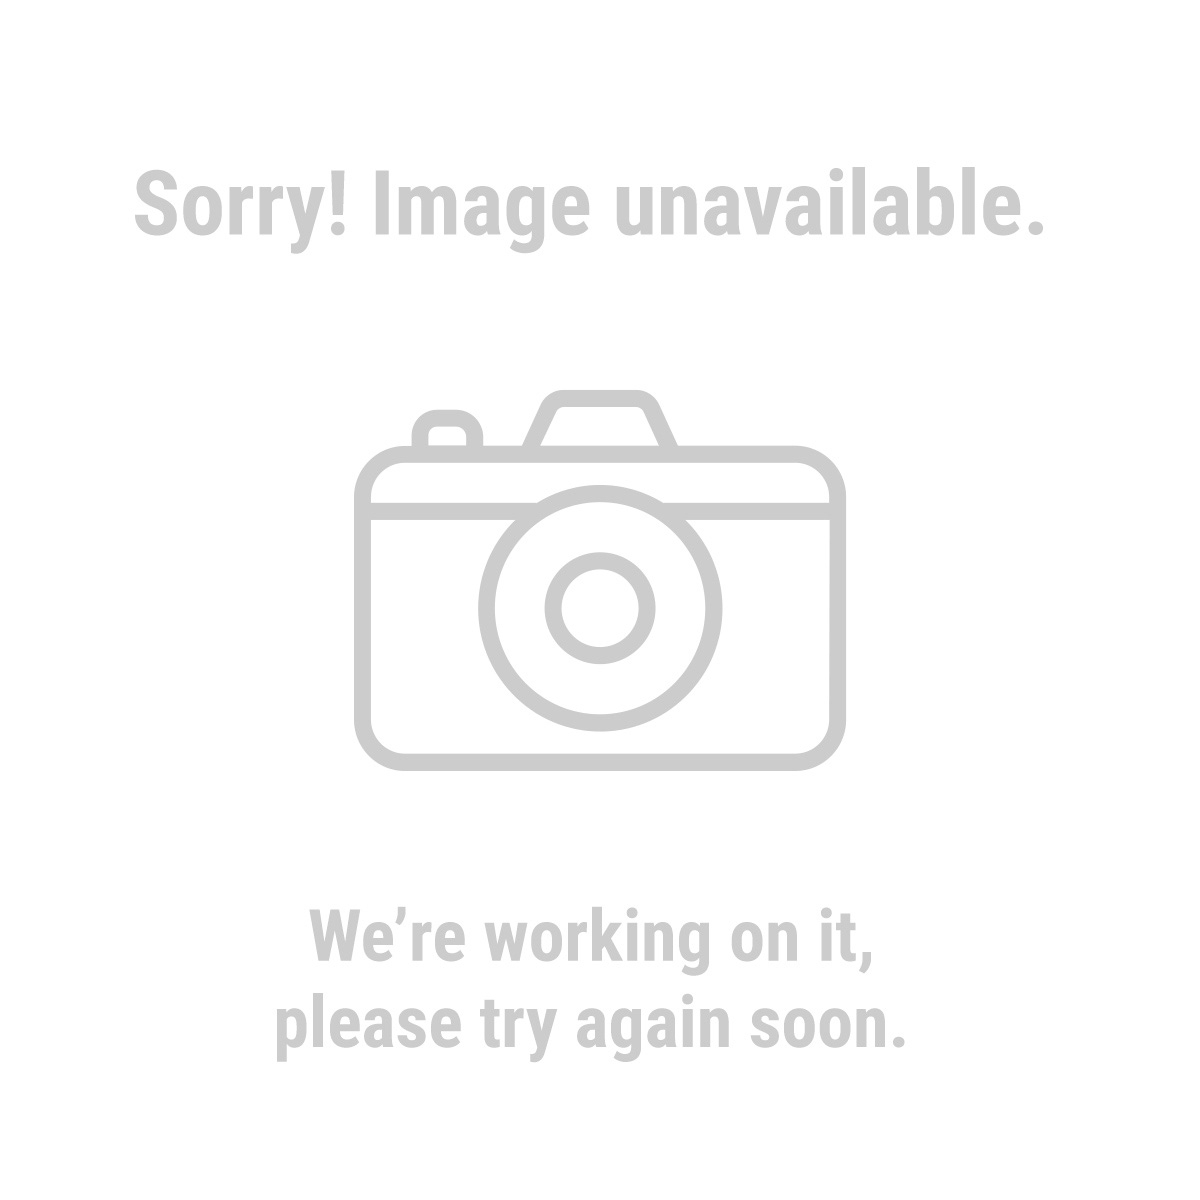 Pacific Hydrostar 66093 Solar Powered Fountain Pump